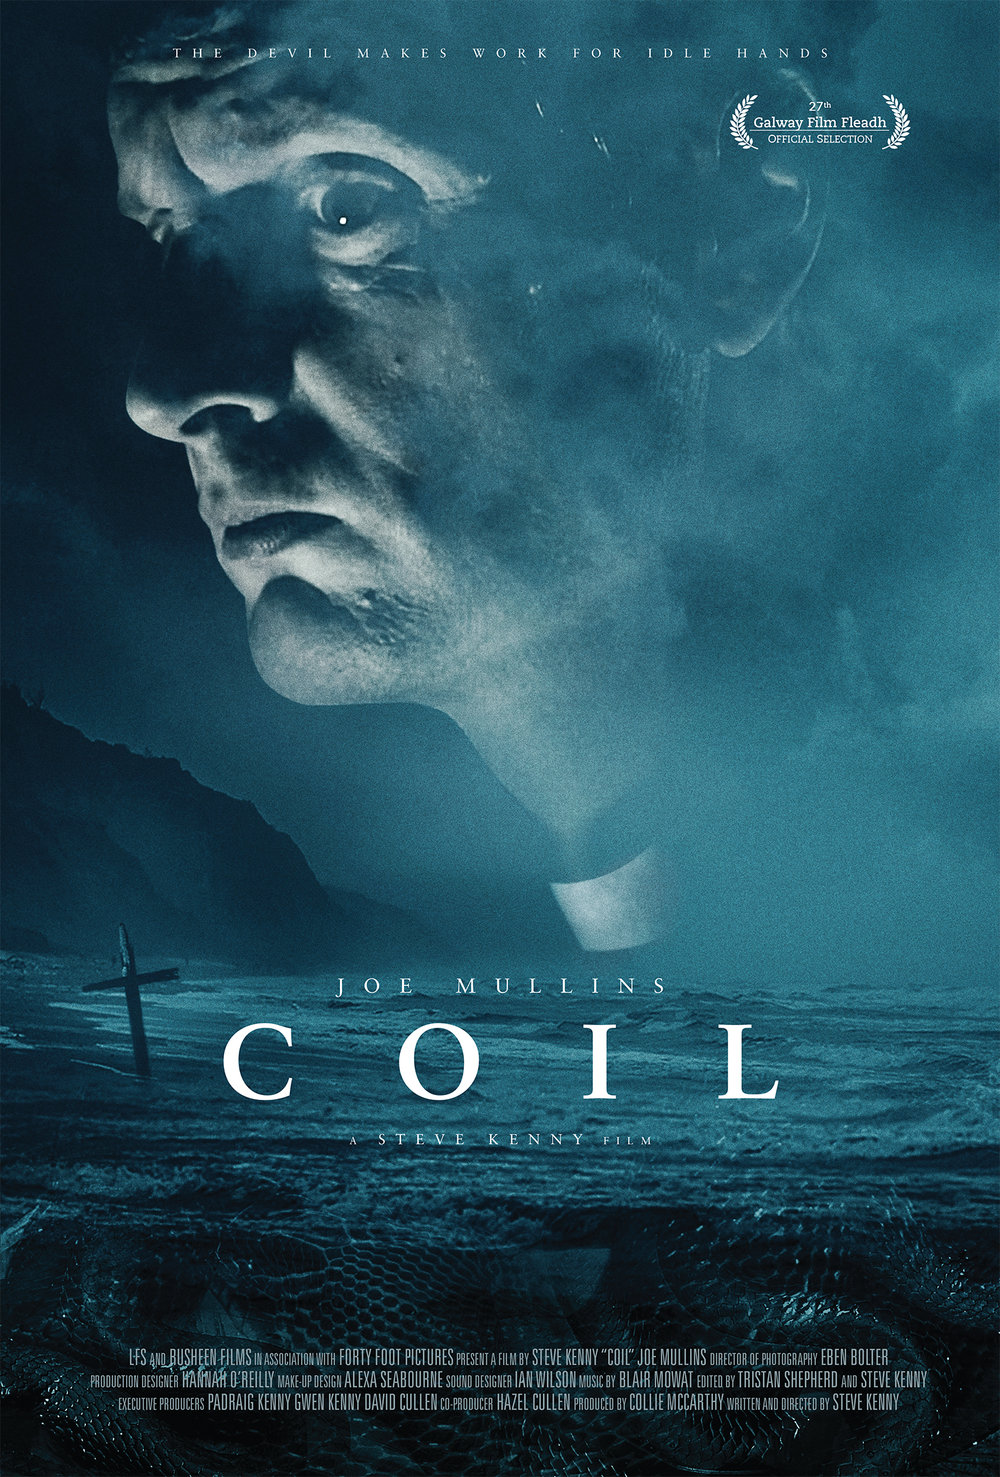 COIL - Horror, Thriller. 15mins.Patrick, a lonely priest in a small rural community, has his world turned upside down when a strange ornament is left anonymously at his front door.Writer/Director: Steve KennyCast: Joe Mullins.Winner of 'Best Student Short' at Kerry Film Festival 2015. 'Best of Fest' at Cork Film Festival 2015.